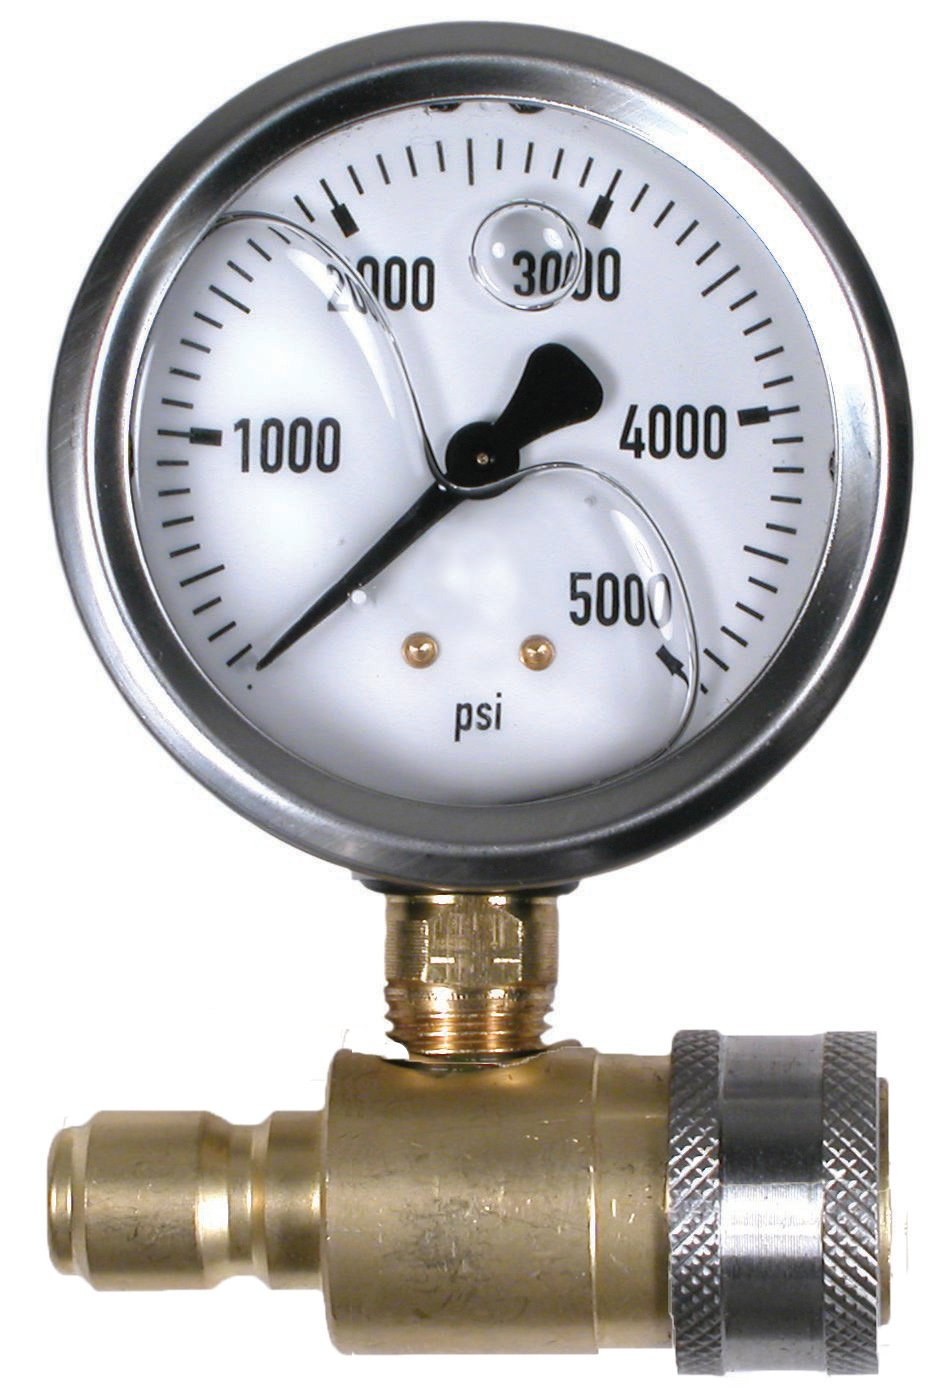 5000 PSI 2-1/2'' Quick Connect Cold Water Test Gauge Assembly by Valley Industries